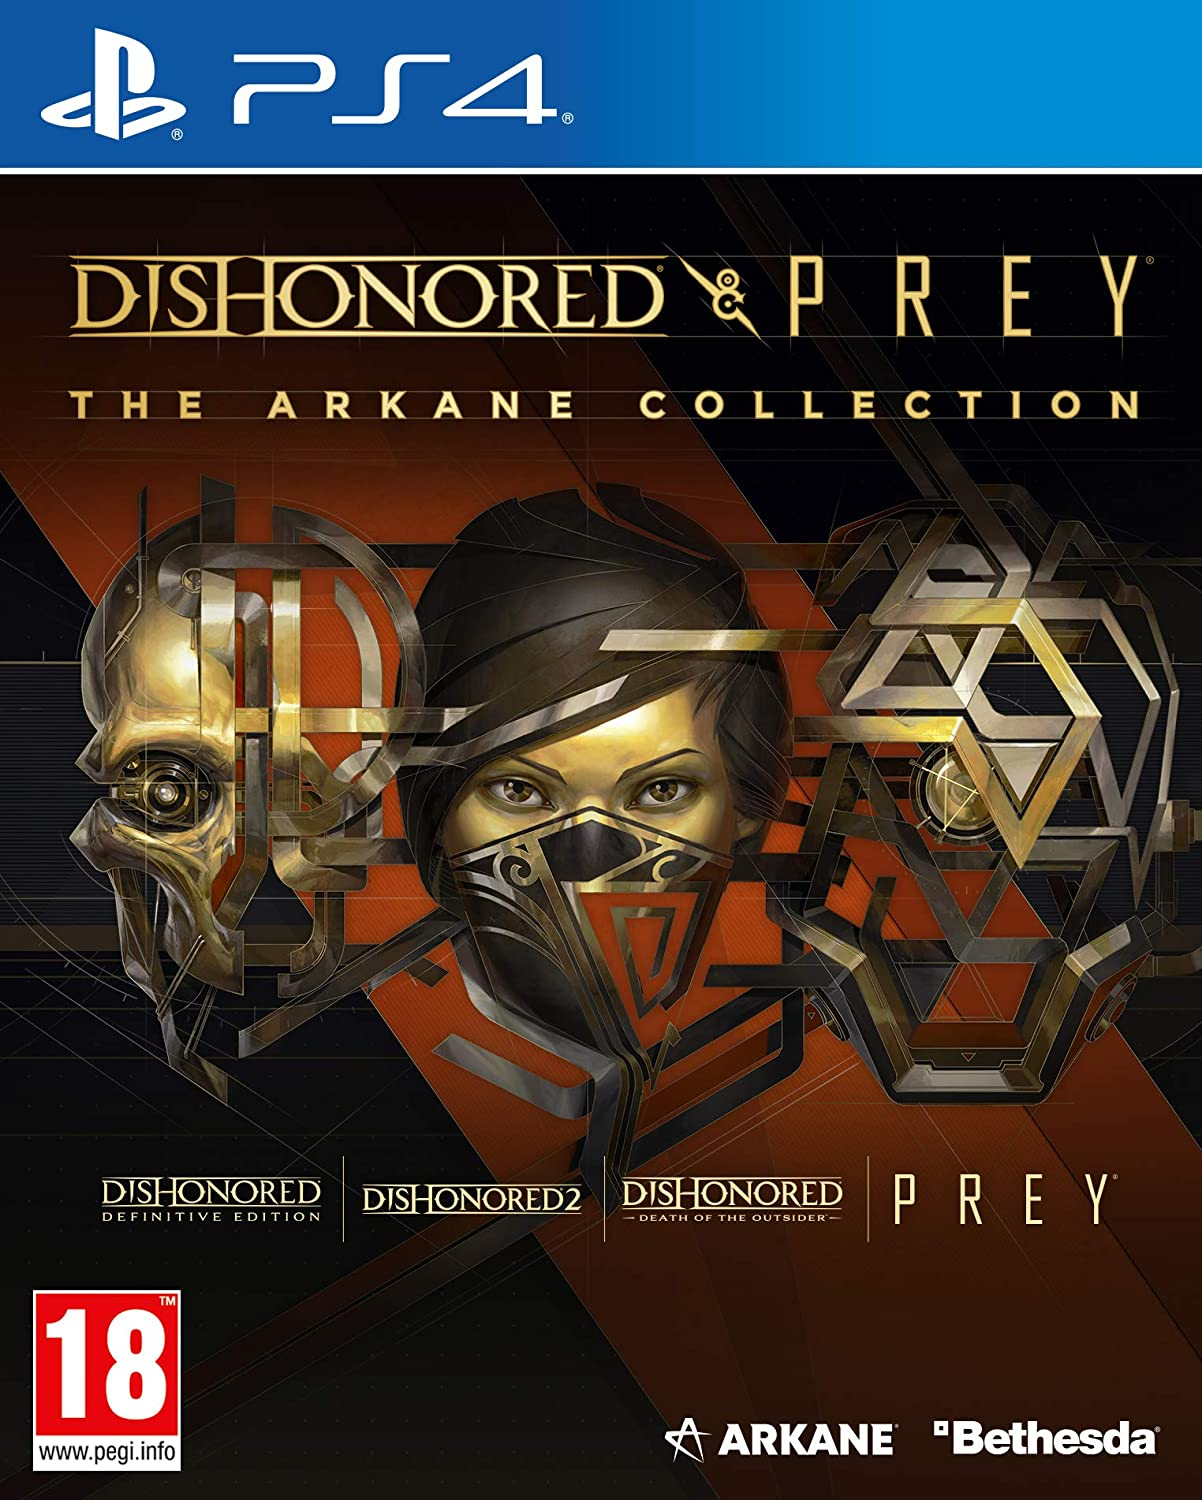 The Arkane Collection Dishonored and Prey